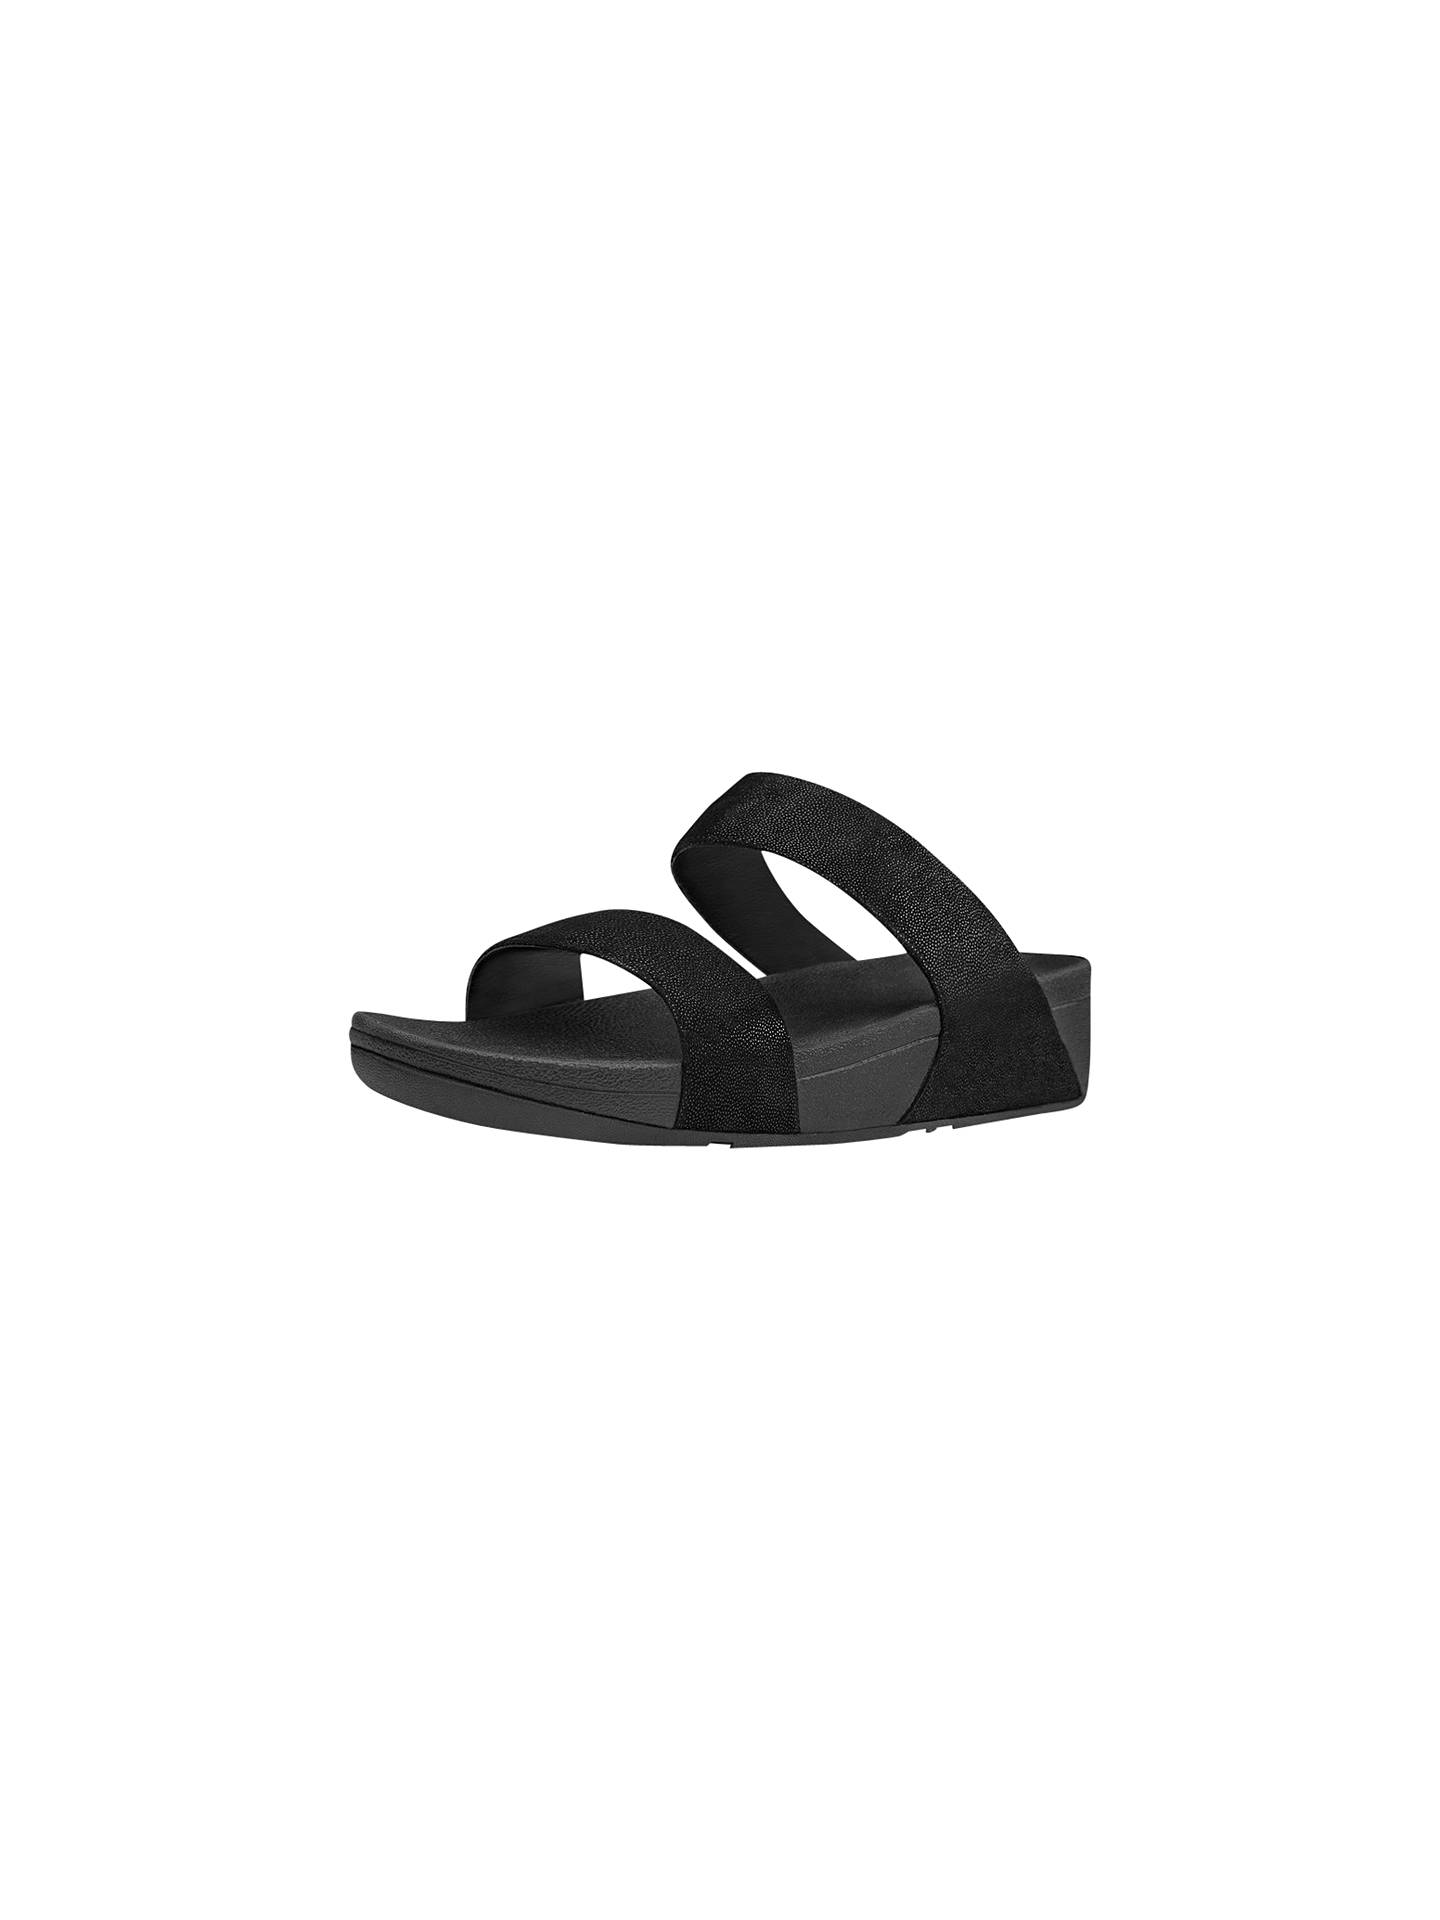 5daf3f02b3565 FitFlop Shimmy Suede Slide Sandals at John Lewis   Partners